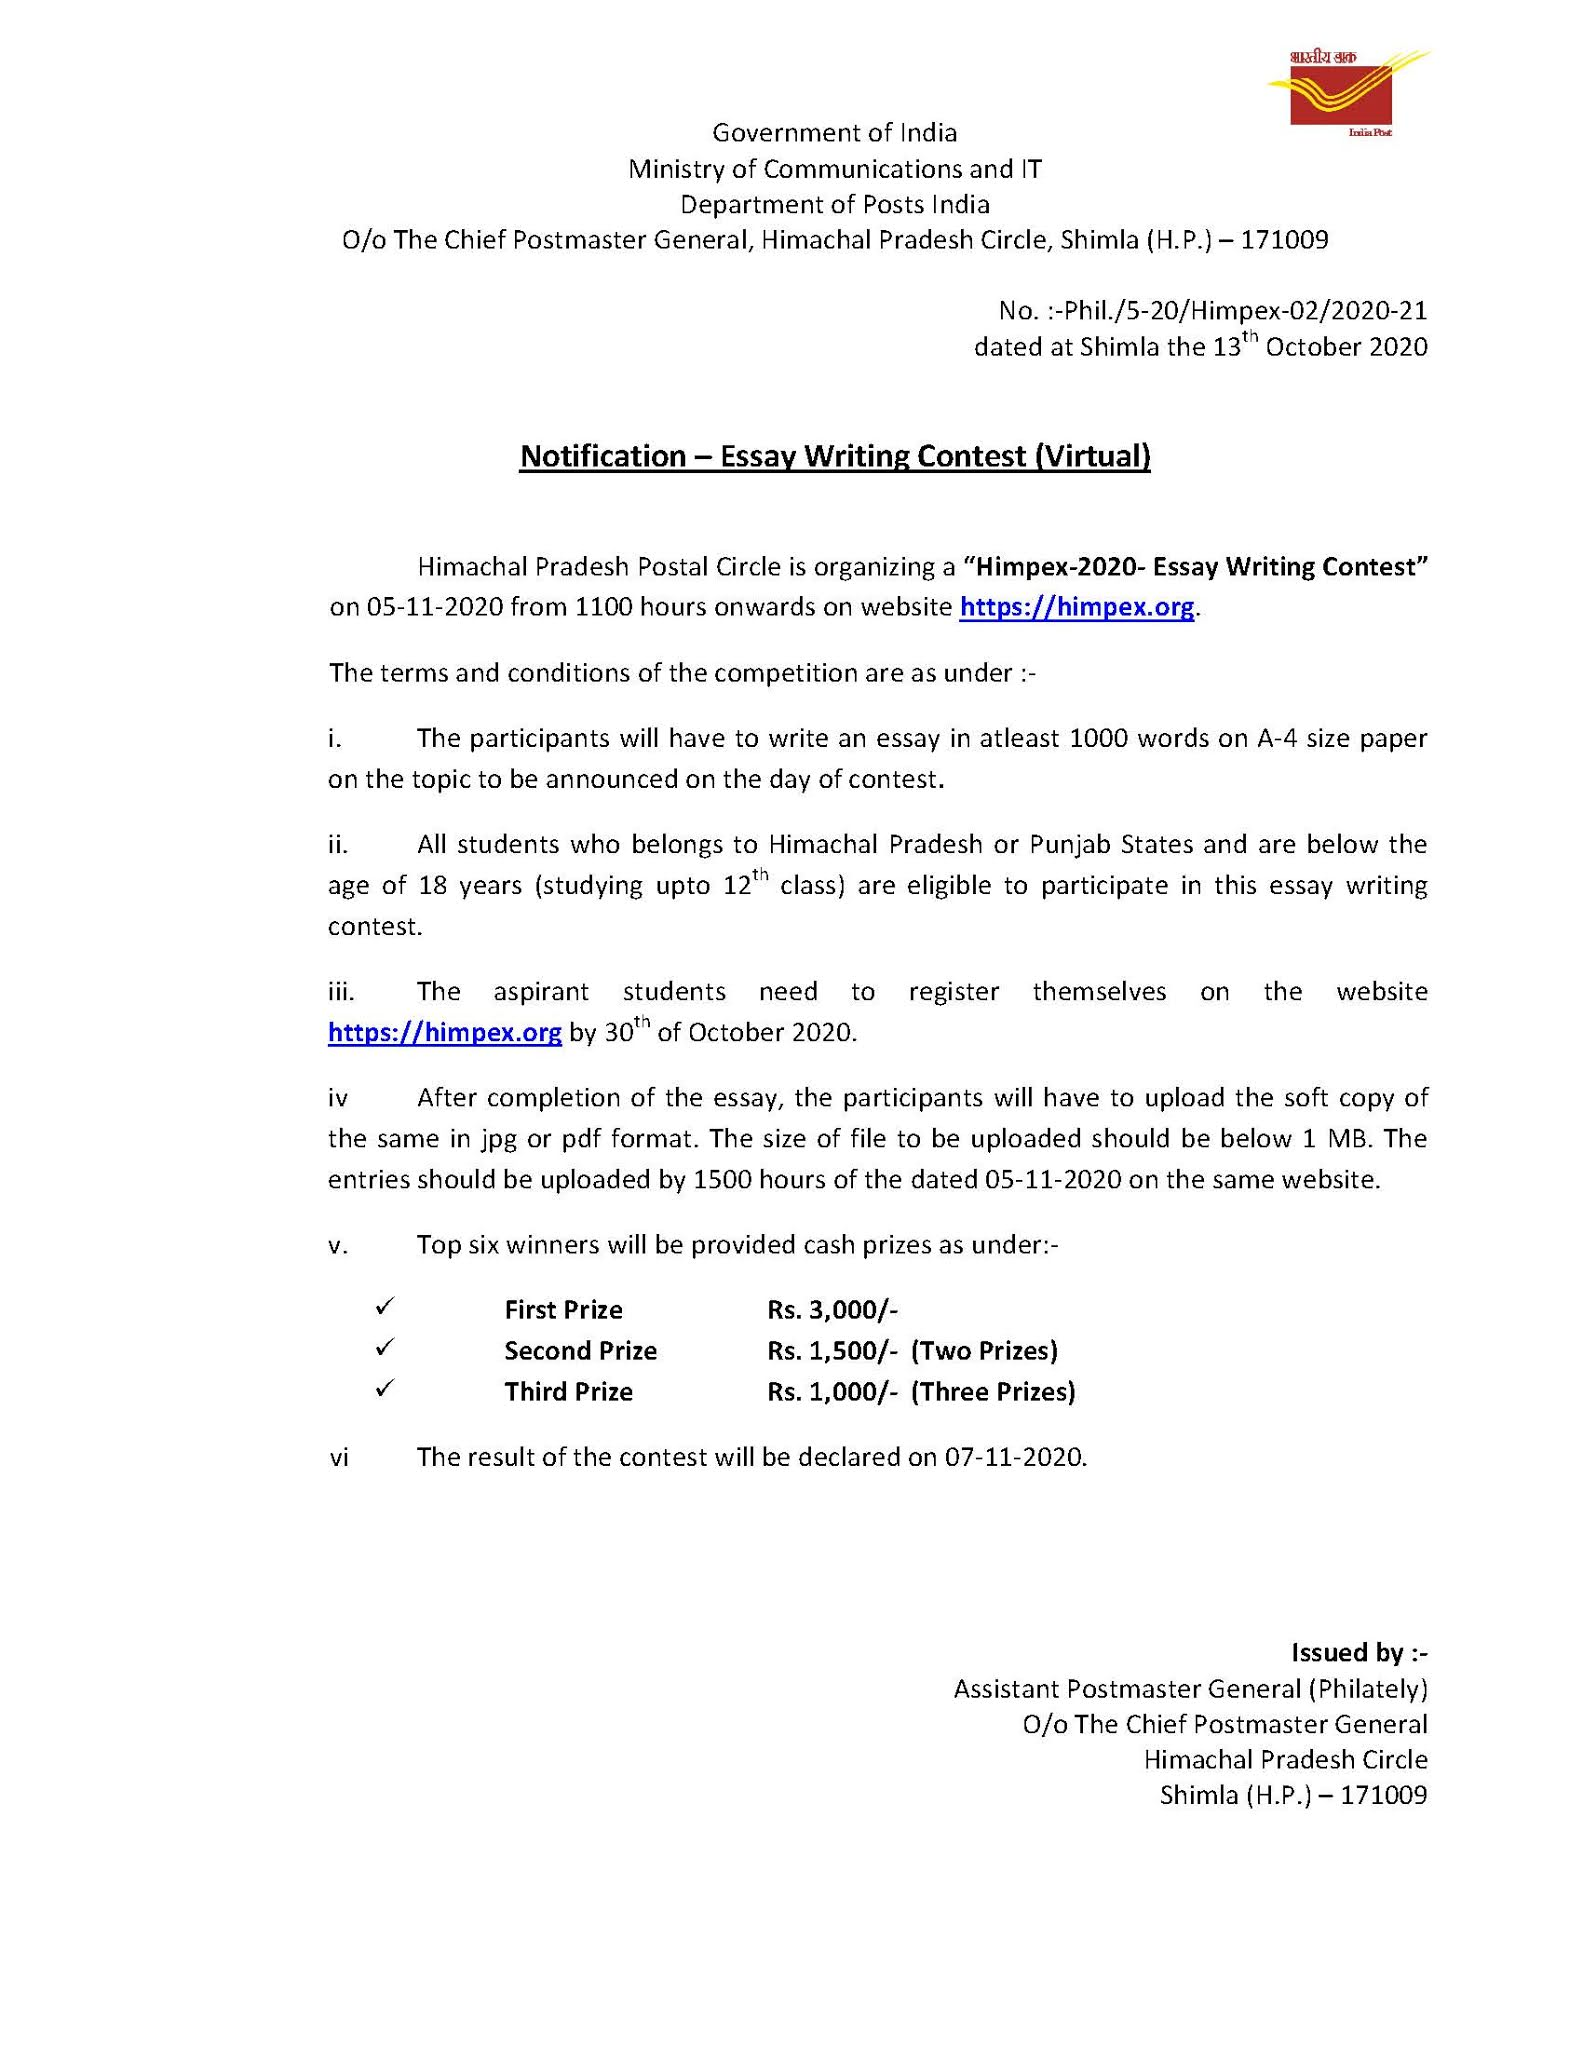 Marketing research papers scdl